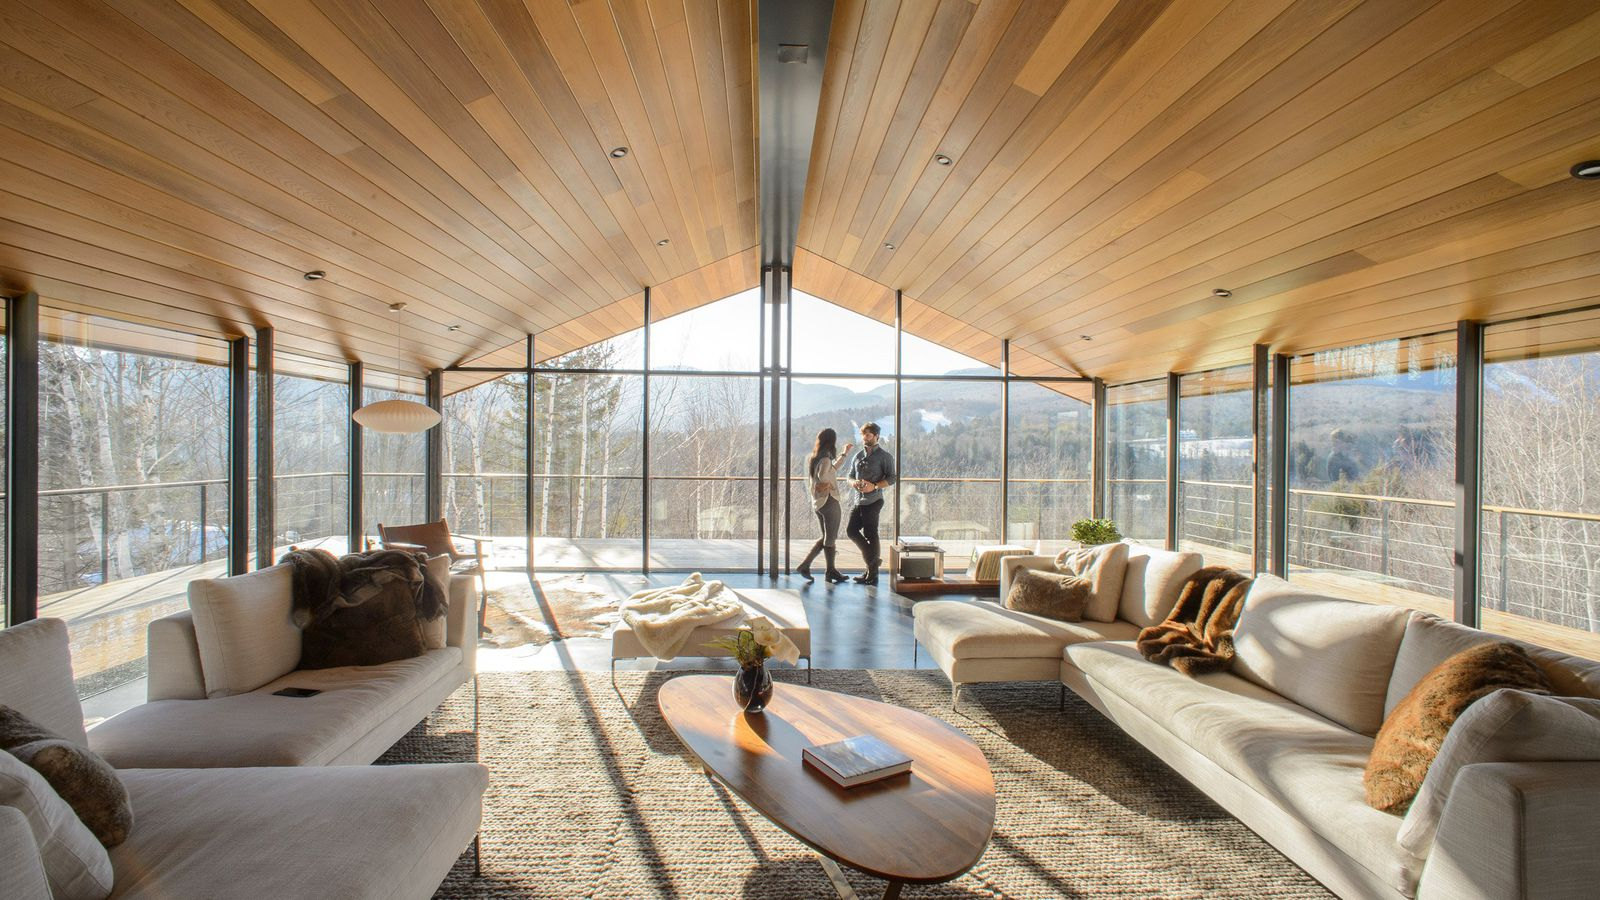 Threepronged glass house rises in Vermont  Curbed